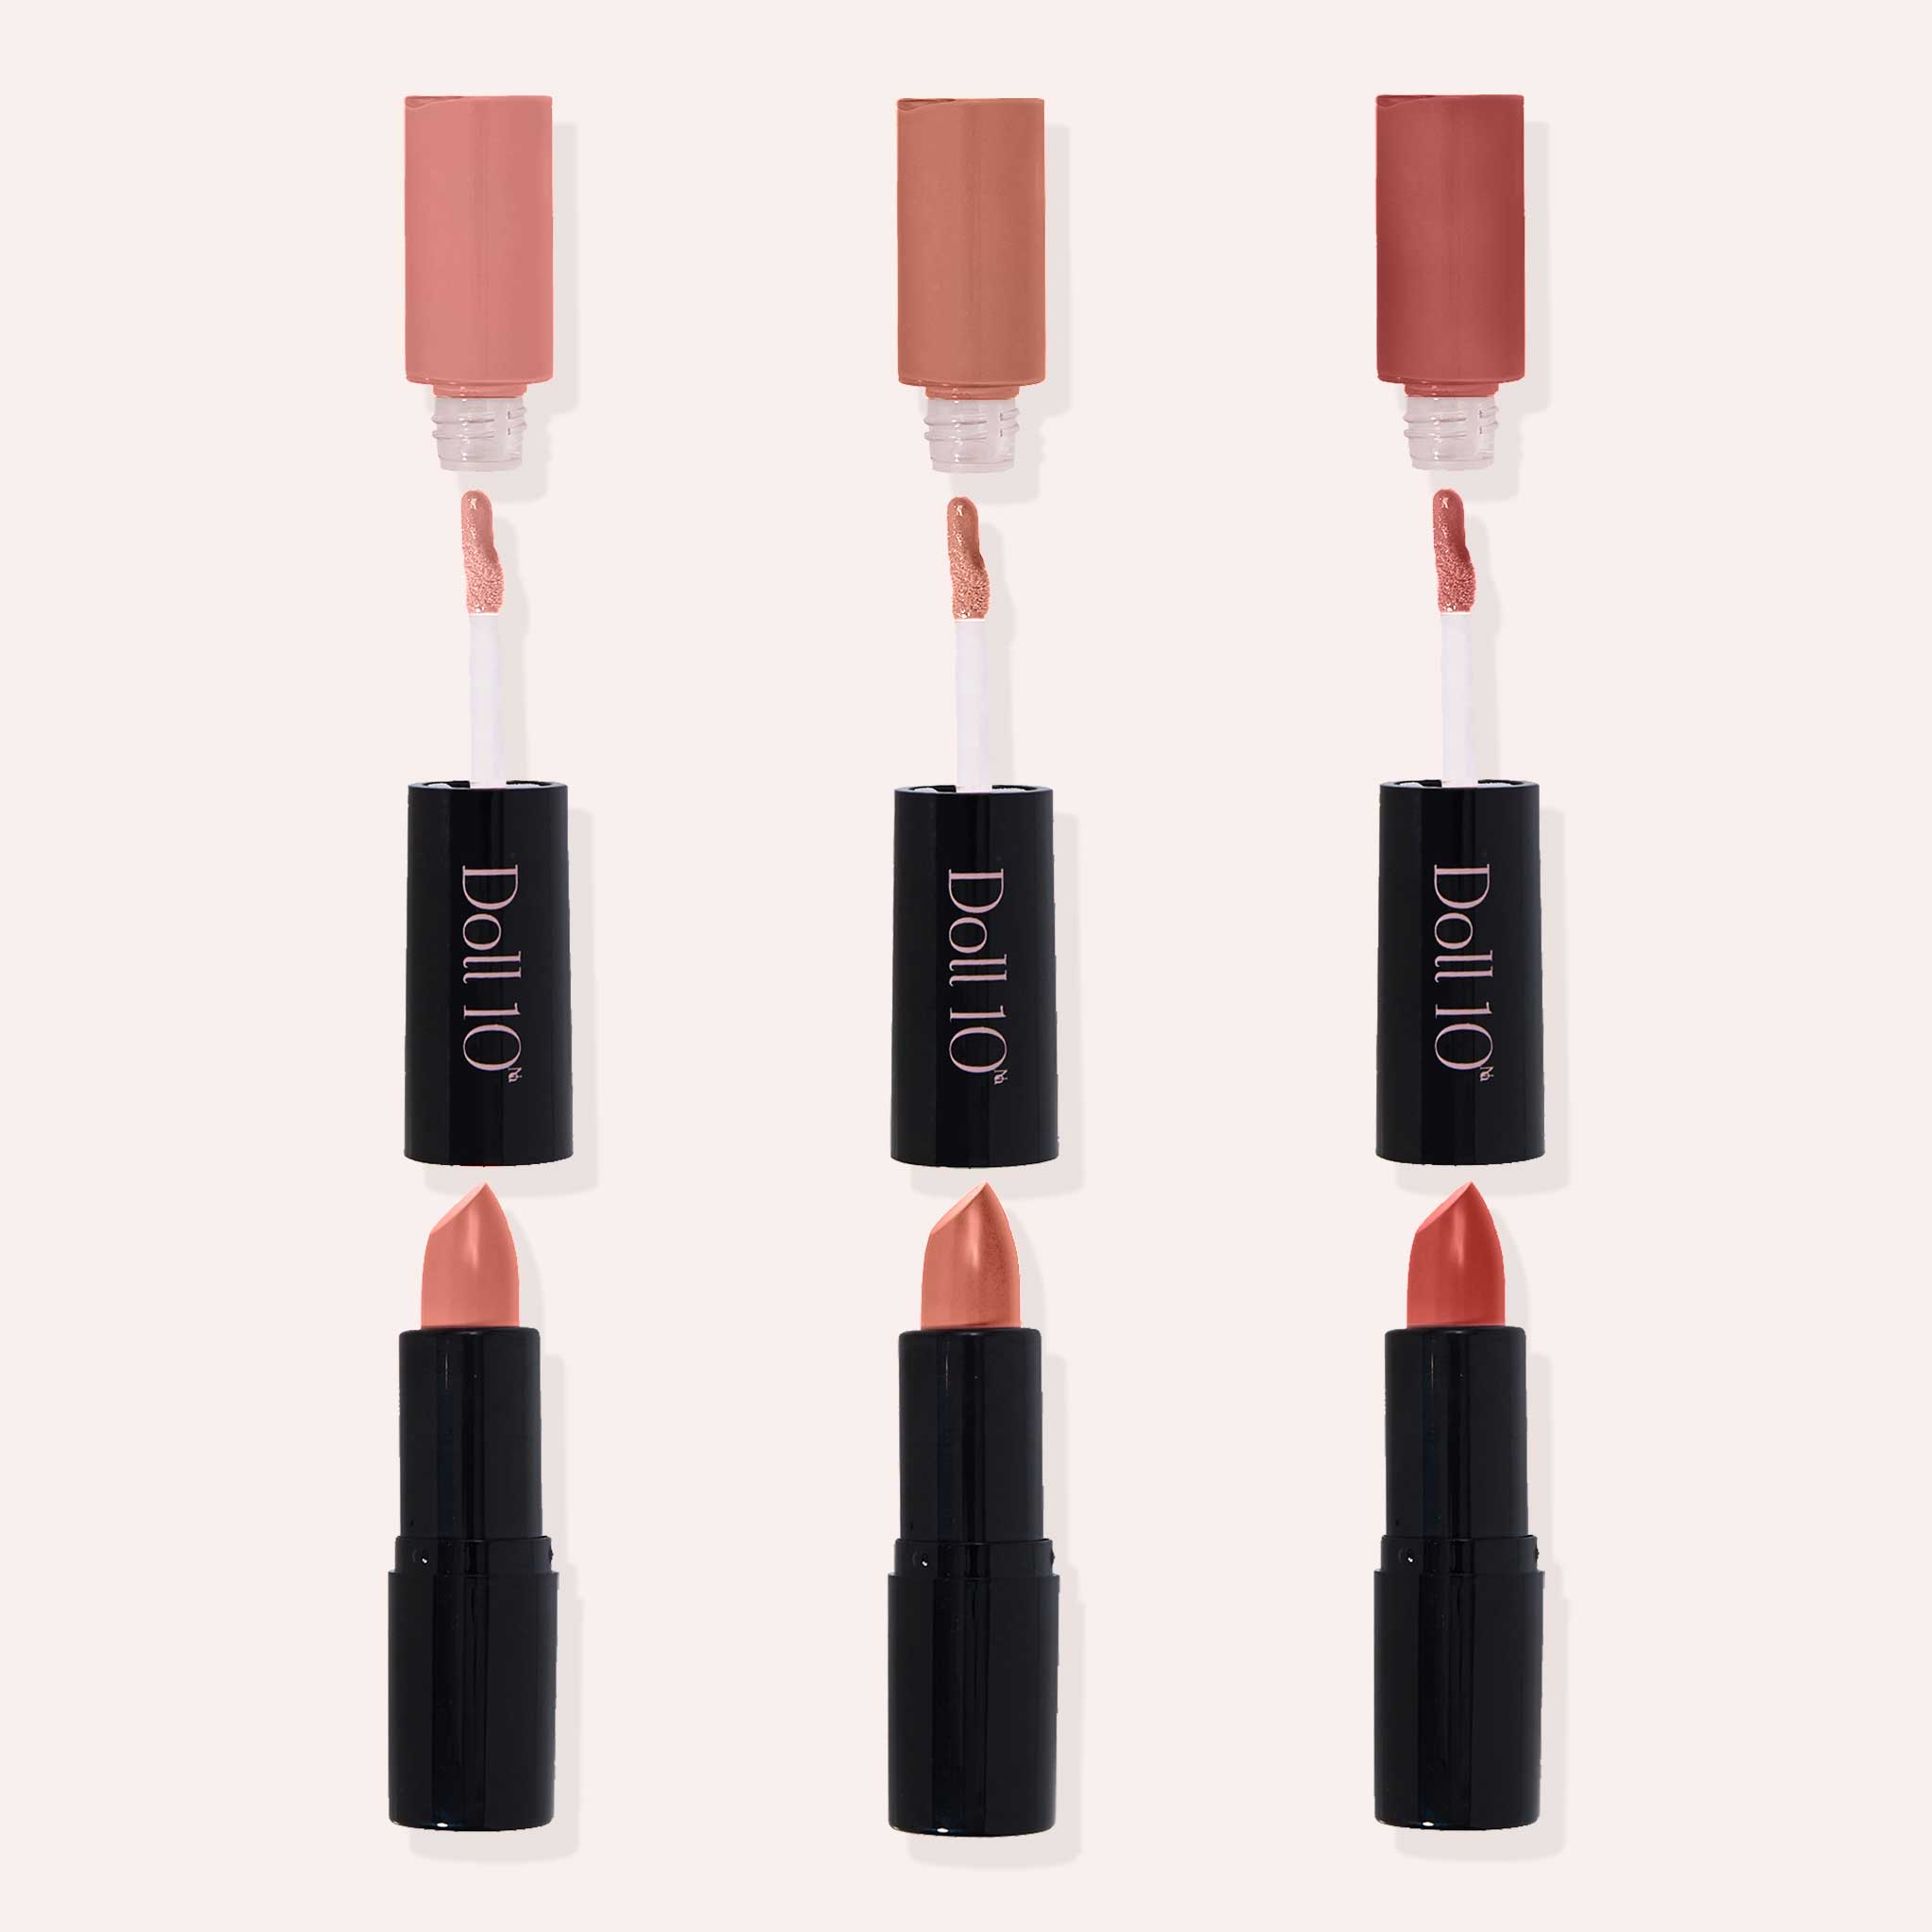 Luxurious Lips Nude Lip Wardrobe 6-Piece Collection